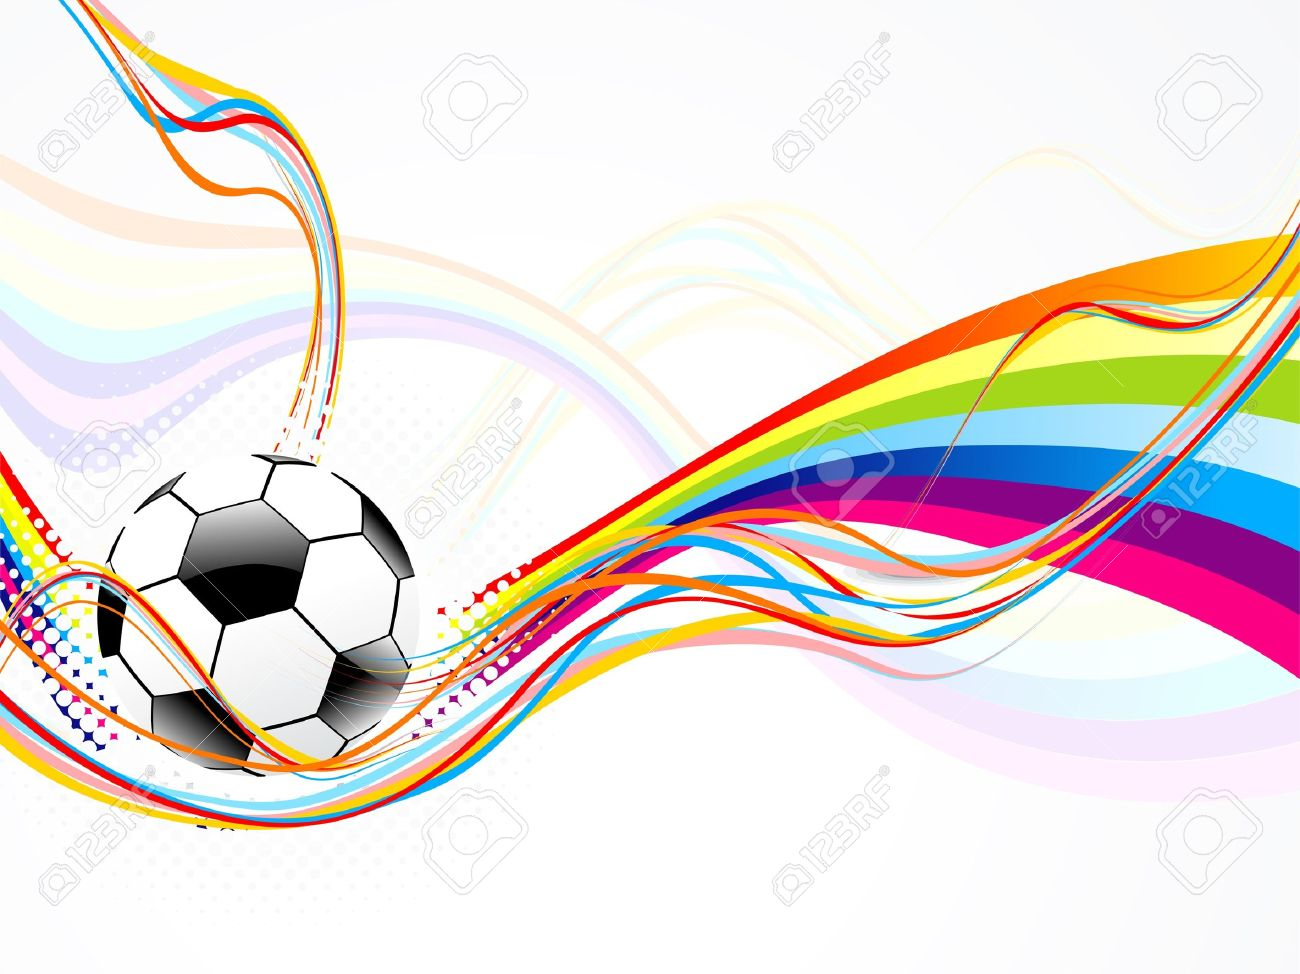 Abstract Wave Background With Football Stock Vector